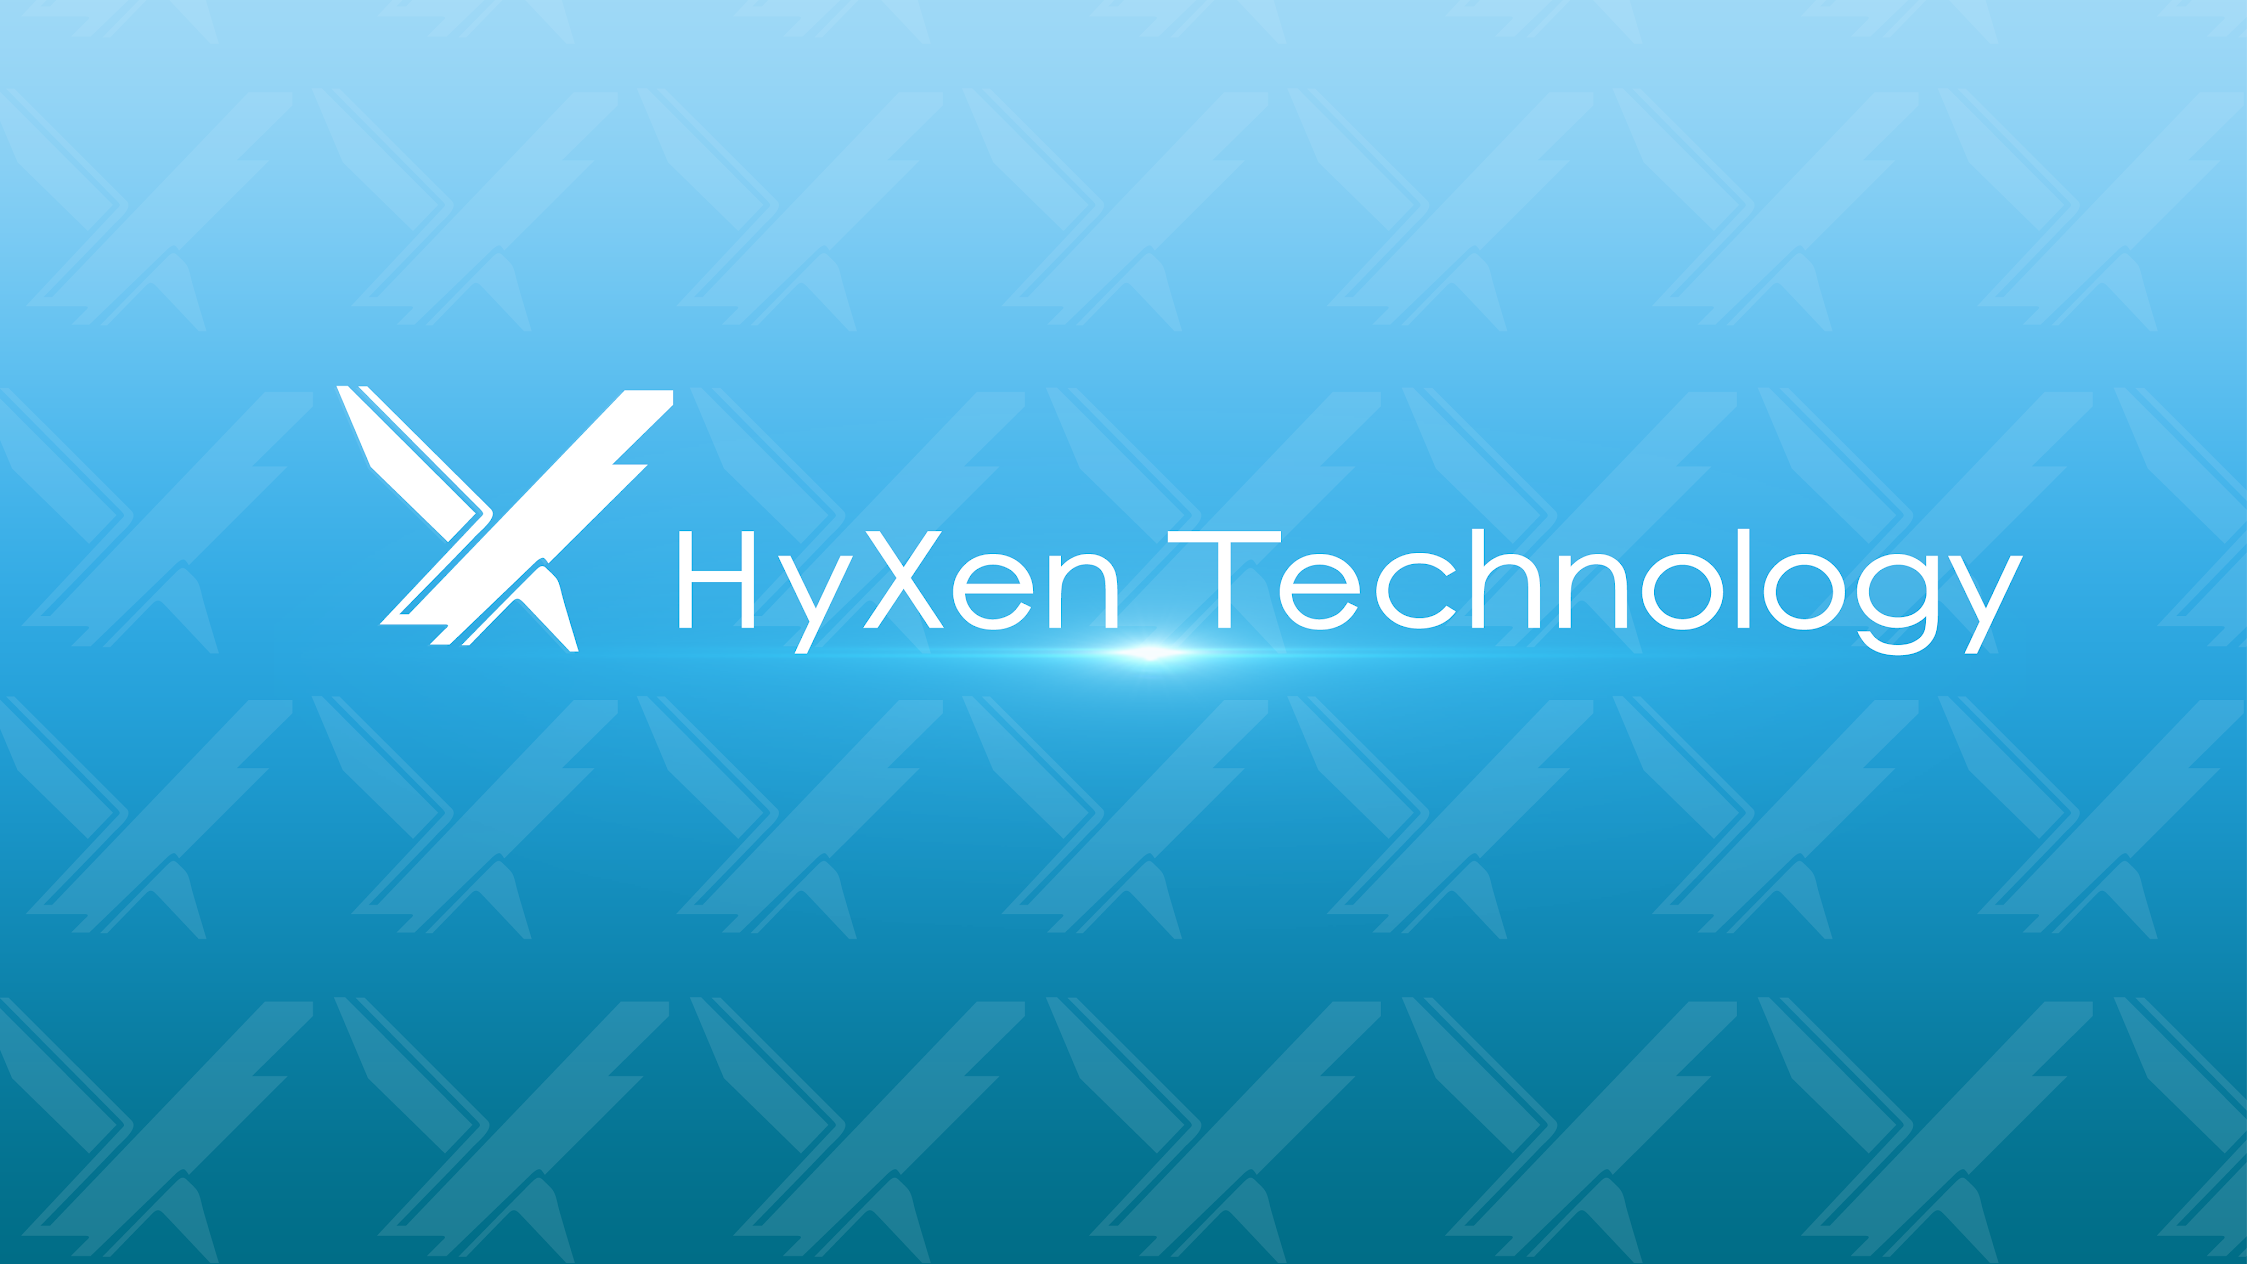 HyXen Technology